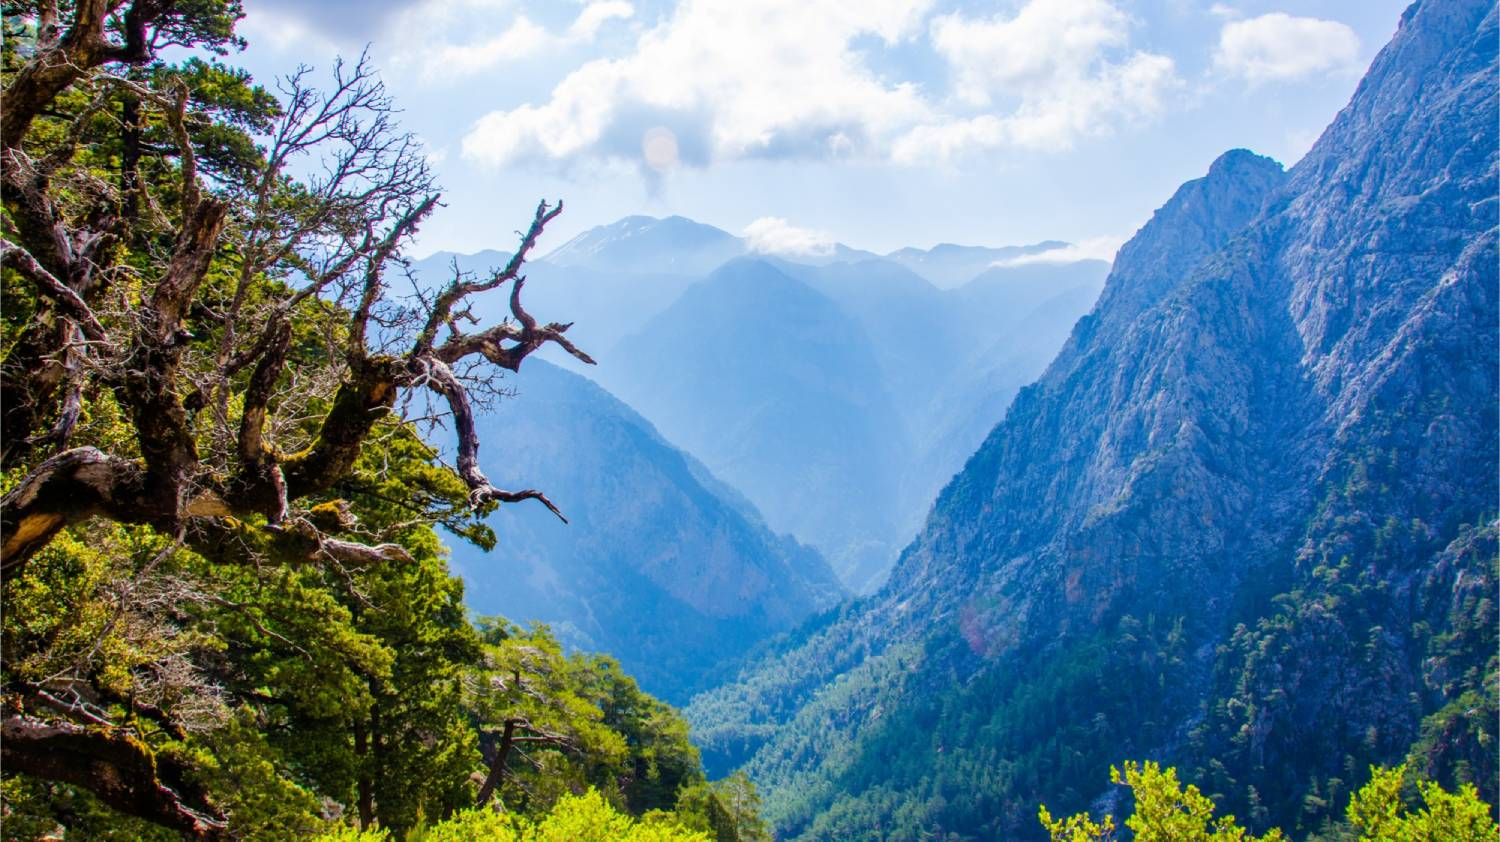 Samaria Gorge - Things To Do In Crete